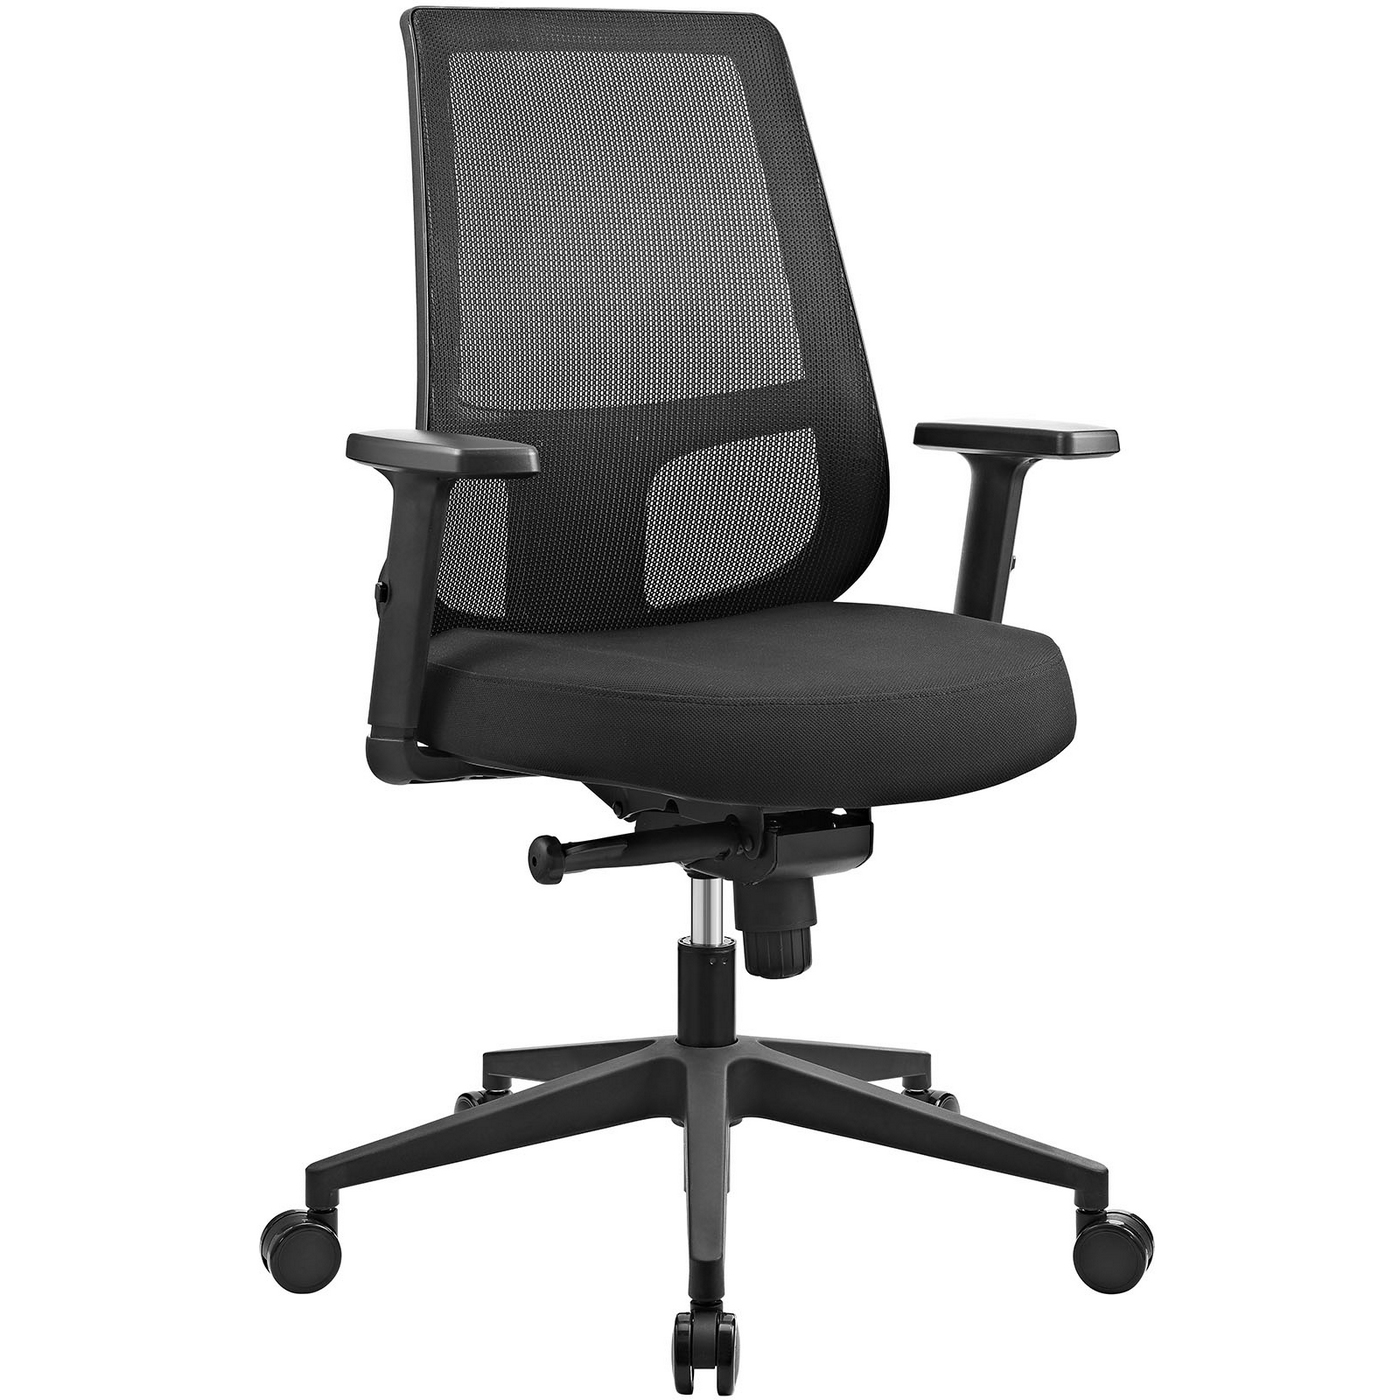 pump ergonomic mesh back office chair with lumbar support black. Black Bedroom Furniture Sets. Home Design Ideas